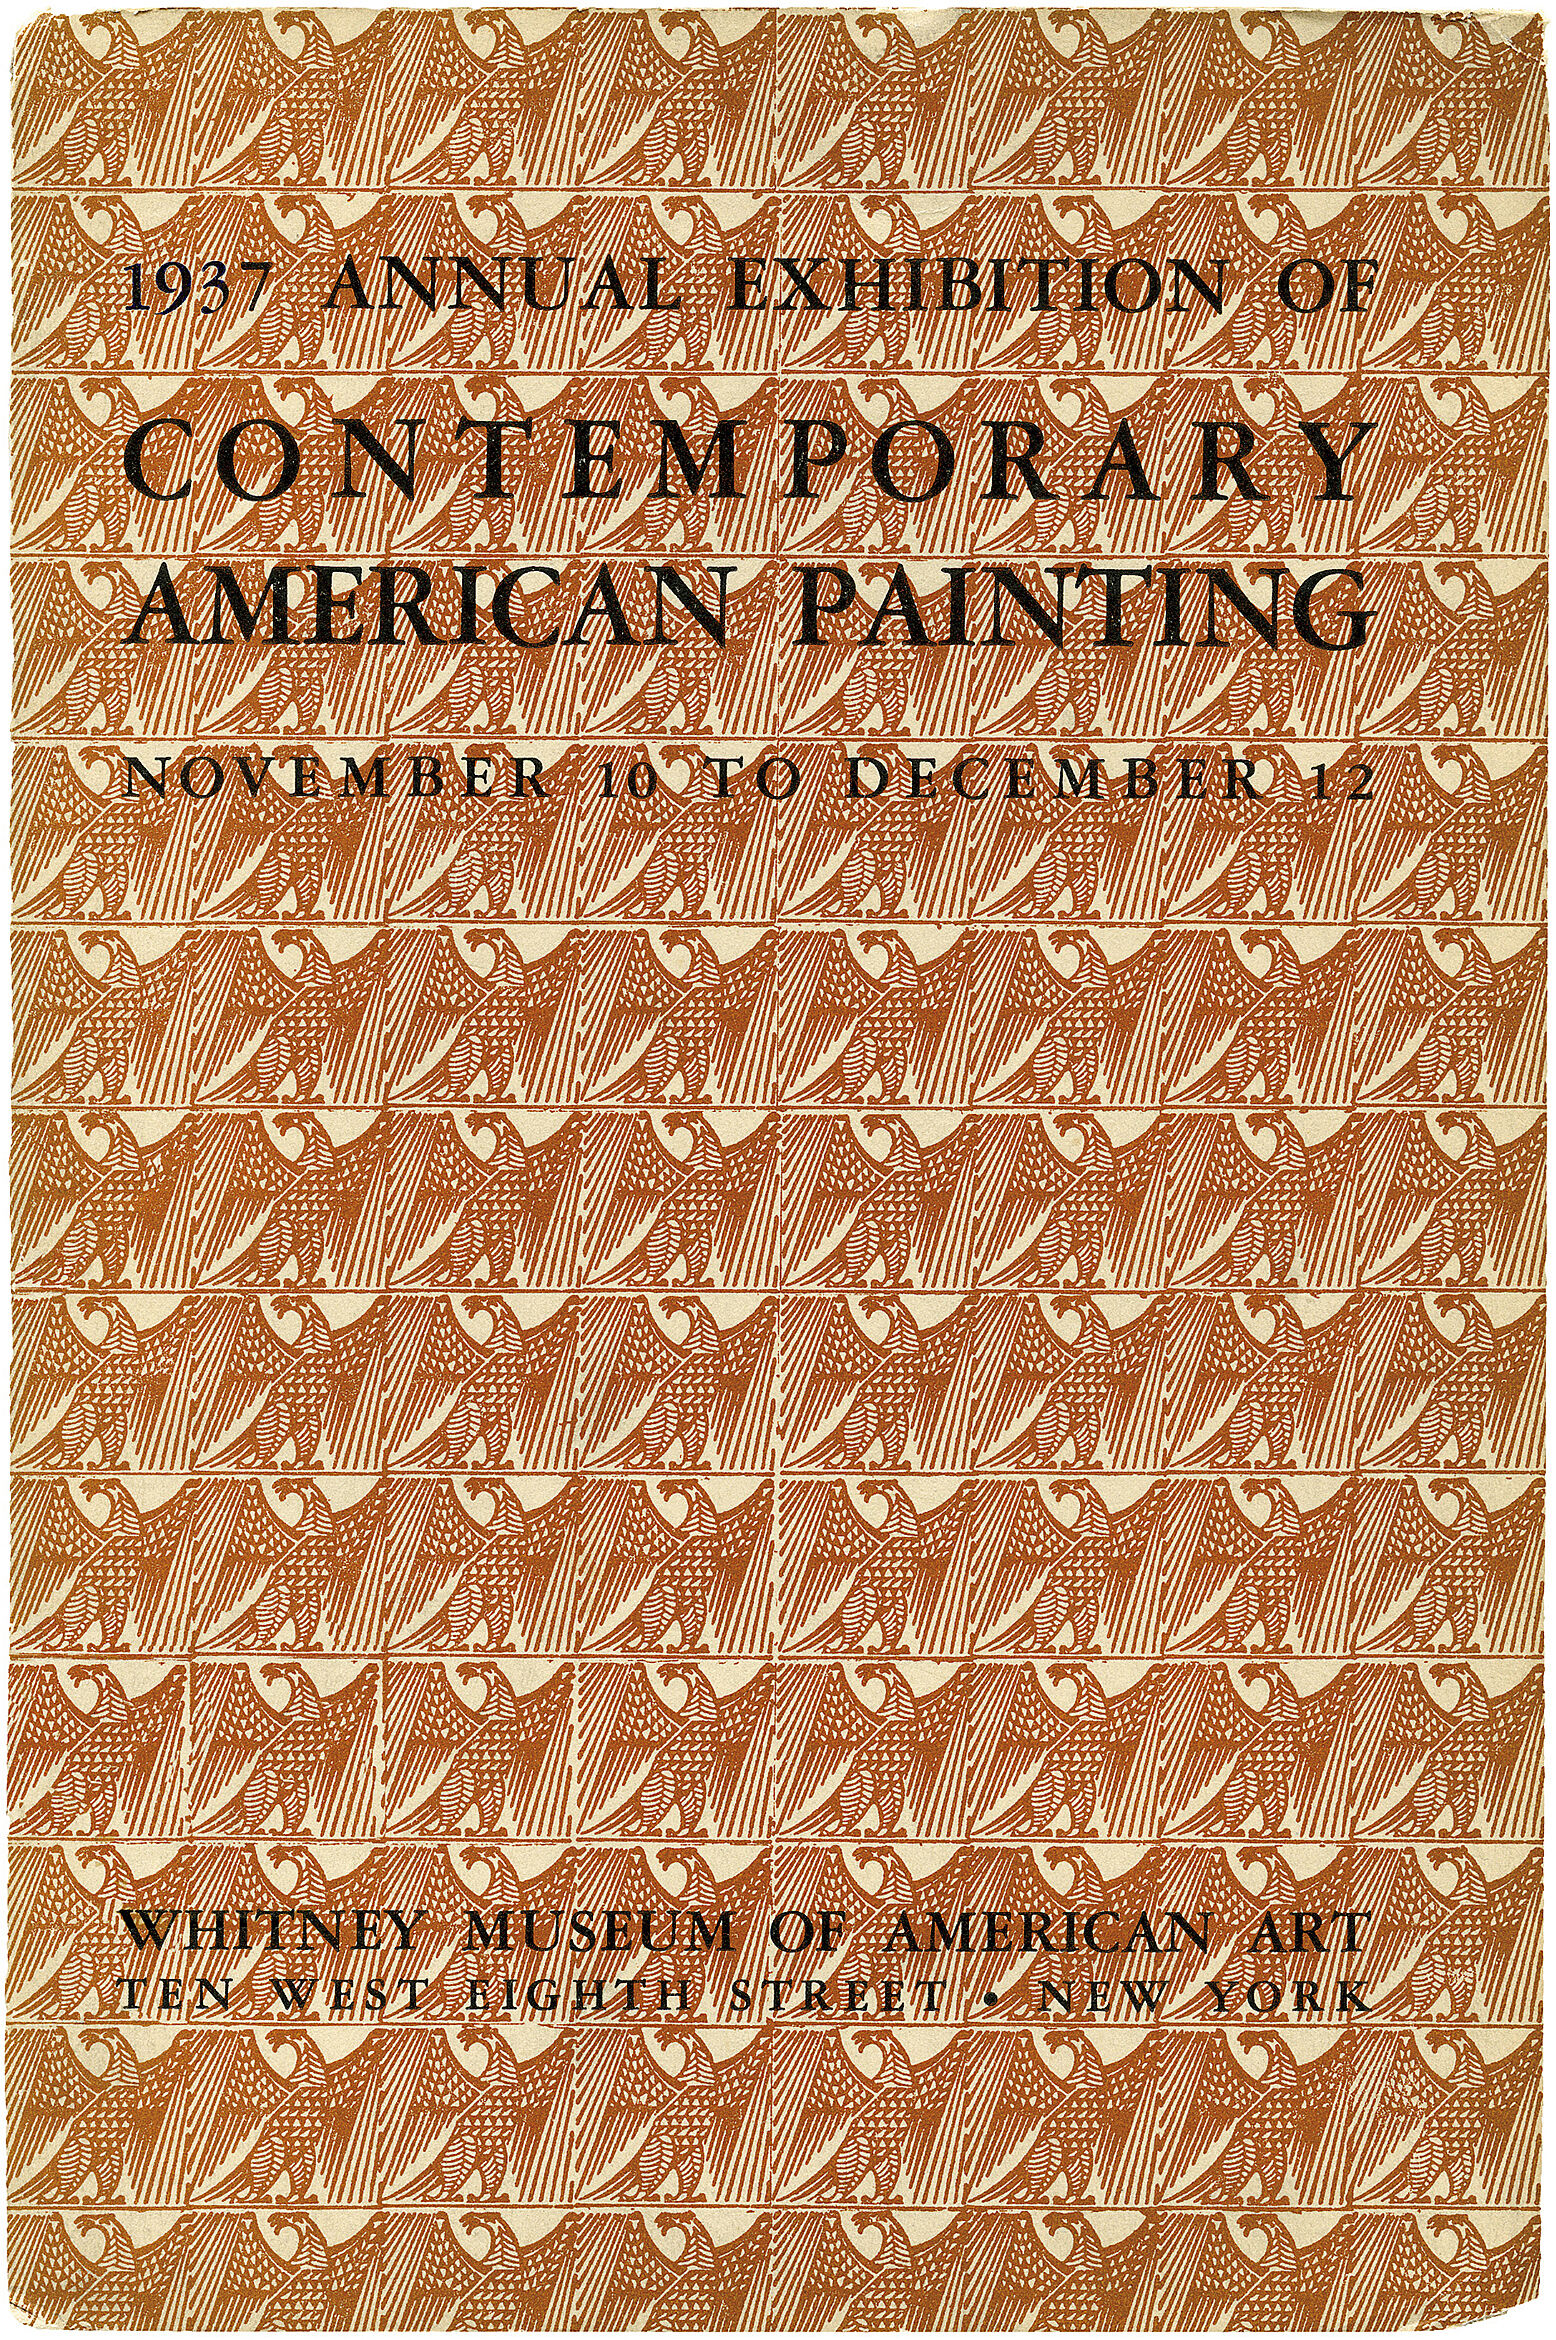 Cover for 1937 Annual Exhibition of Contemporary American Painting catalogue